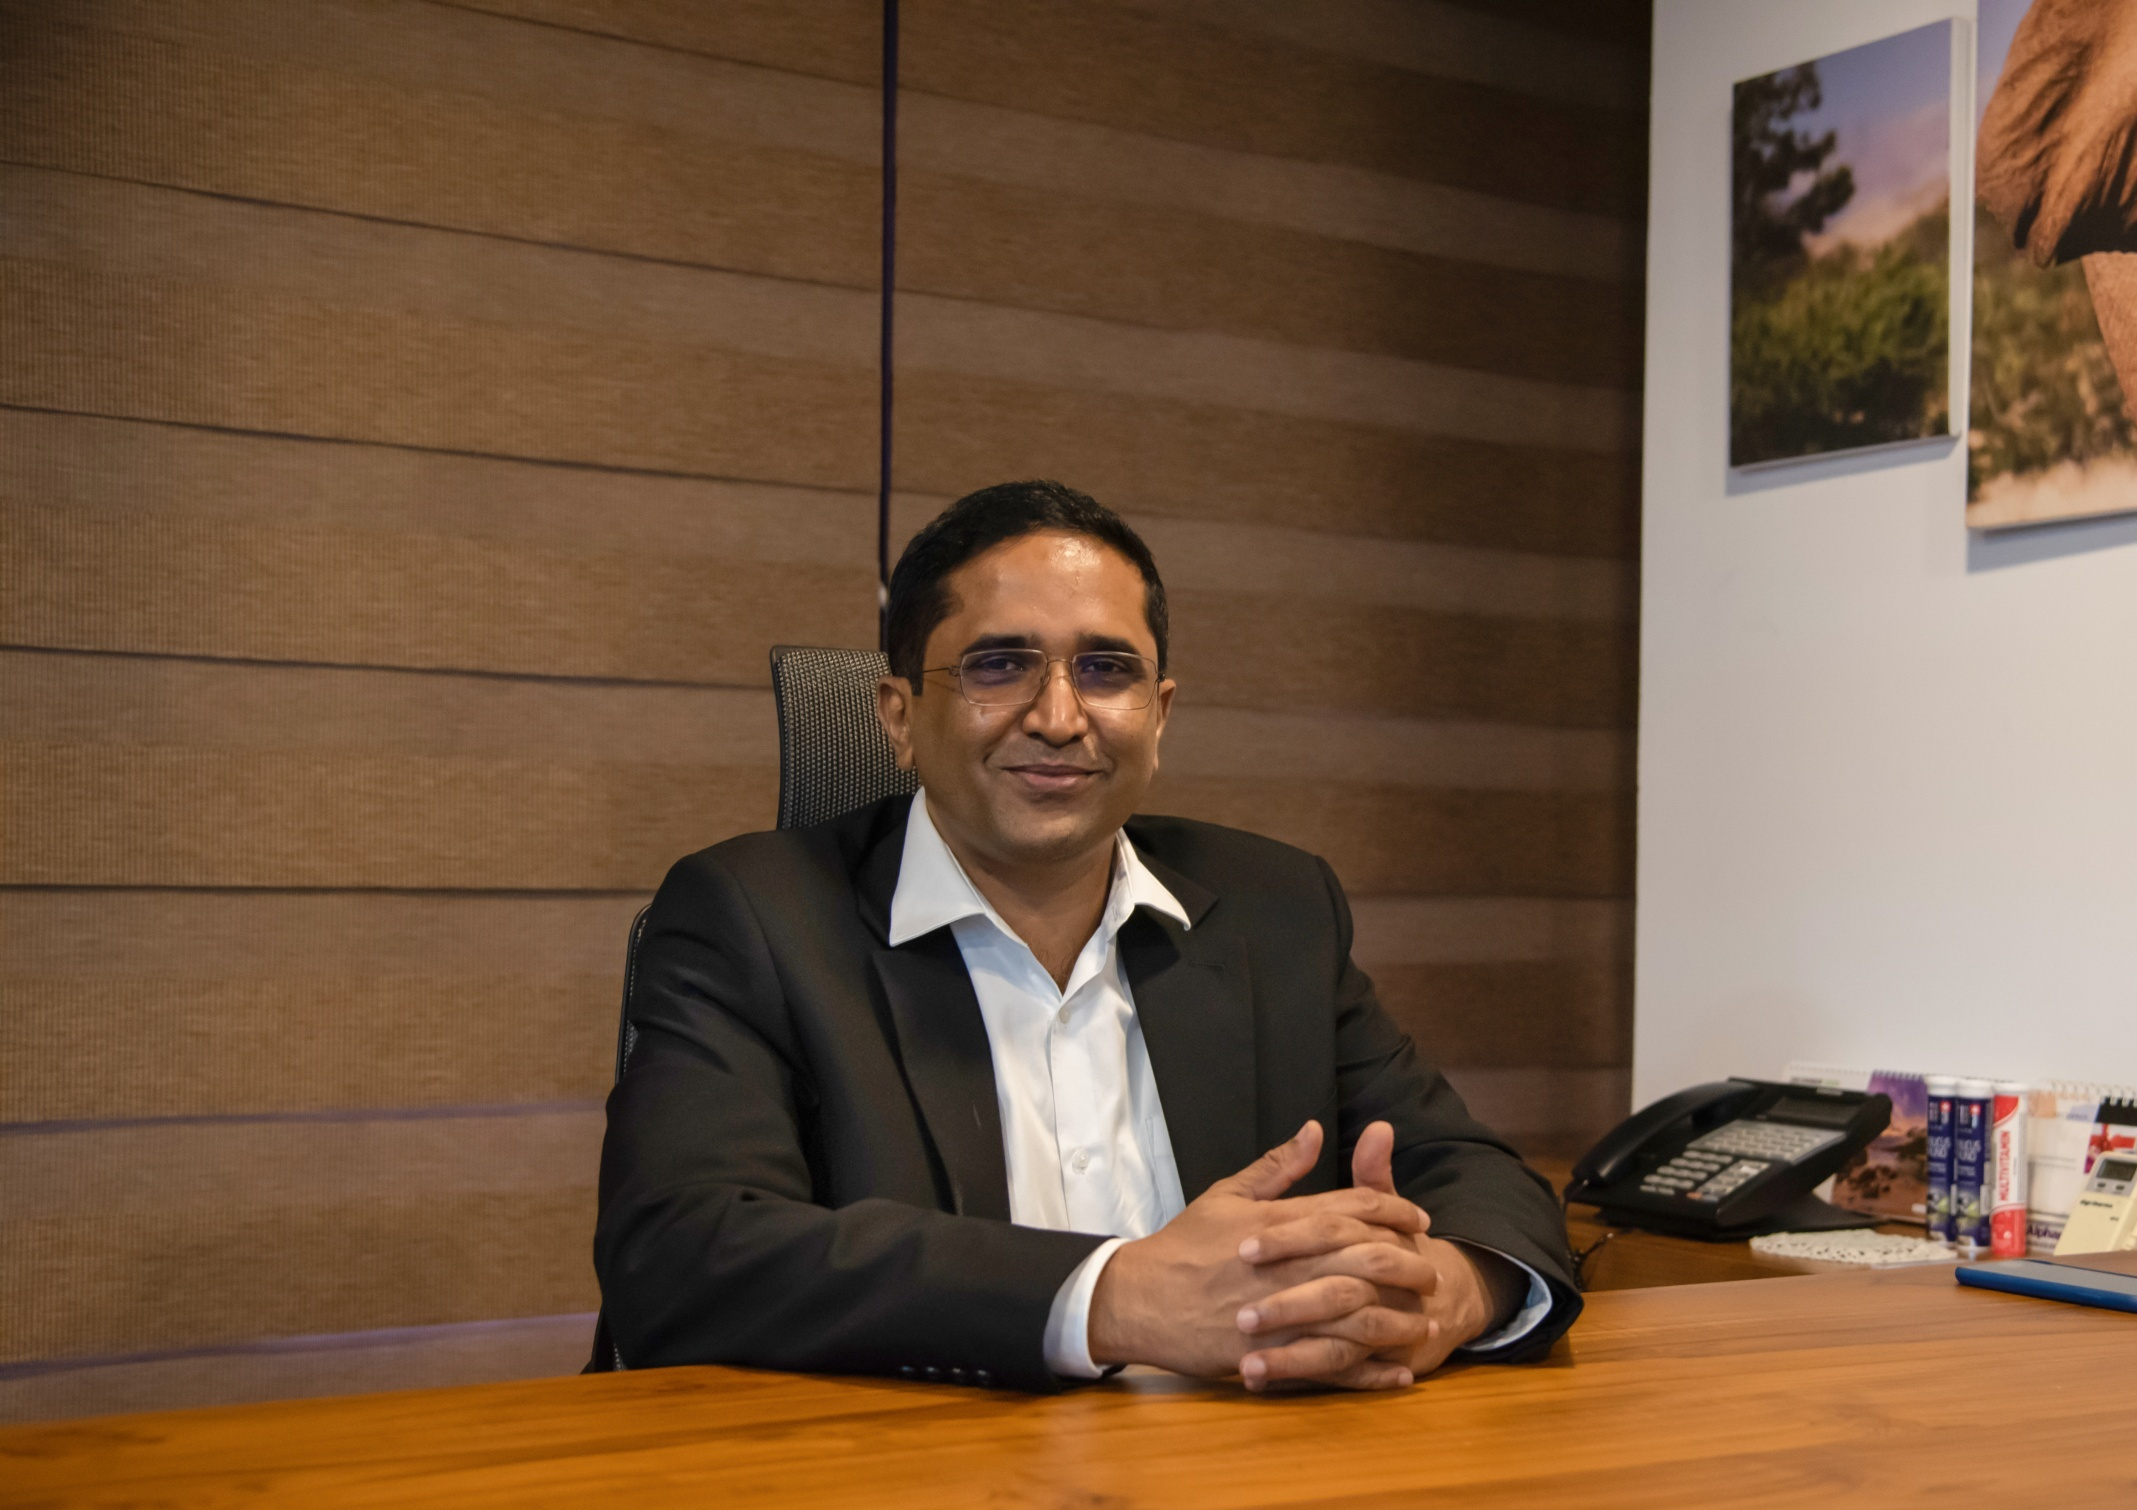 Future of Healthcare – T. Sayandhan, CEO of the Medical Devices Division of Sunshine Healthcare Lanka Ltd